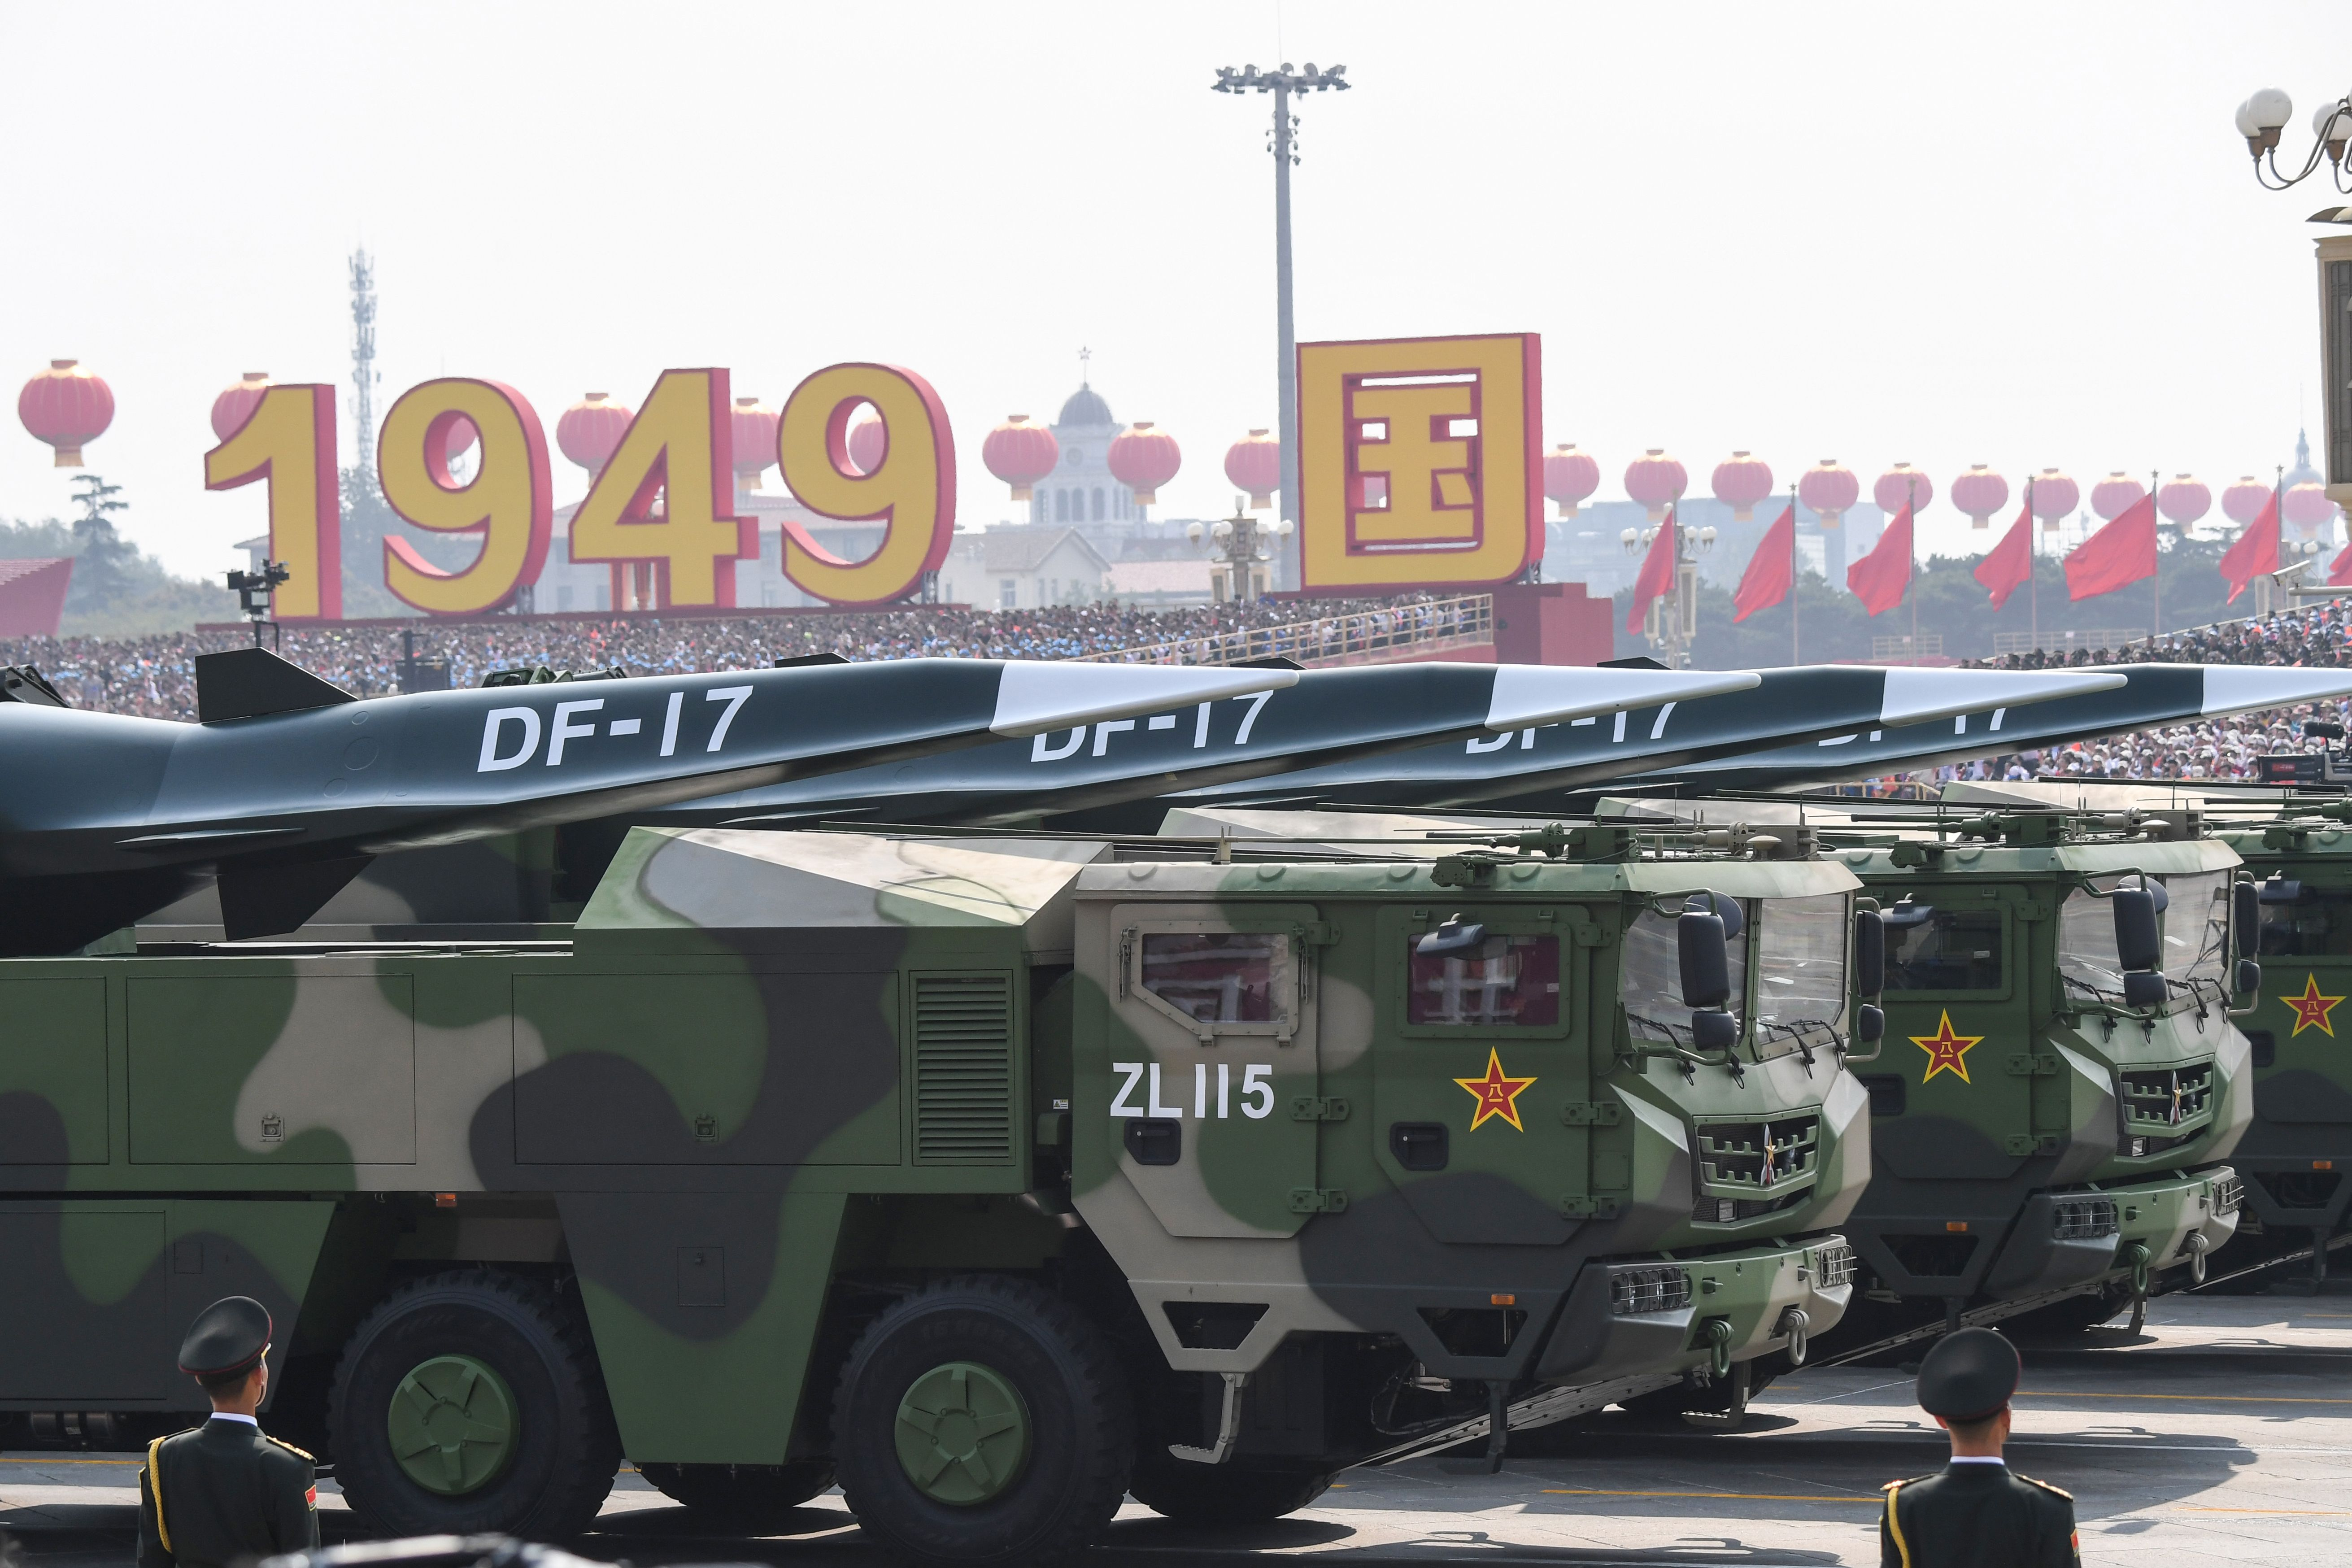 The biggest surprise at the parade was the appearance of the DF-17 hypersonic glide vehicle. (Greg Baker/AFP via Getty Images)